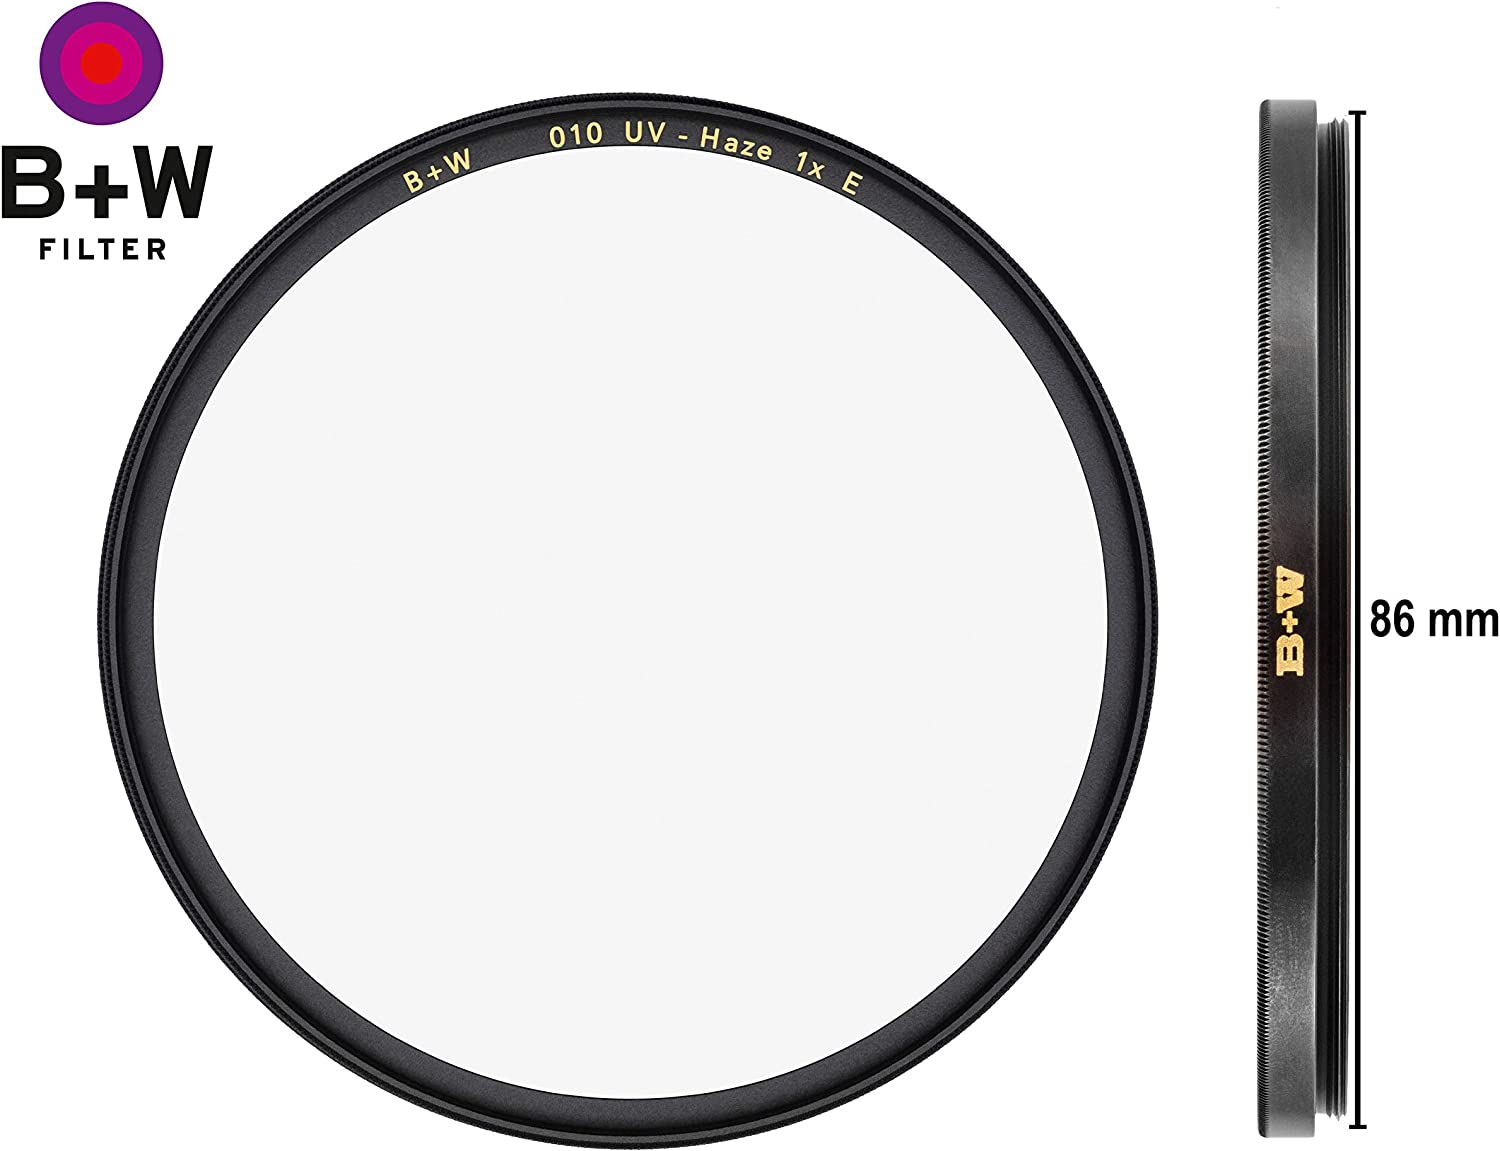 Clear Protector MRC Standard Mount Photography Filter 010 for Camera Lens 16 Layers Multi-Resistant Coating B F-PRO 77 mm W 77mm UV Protection Filter